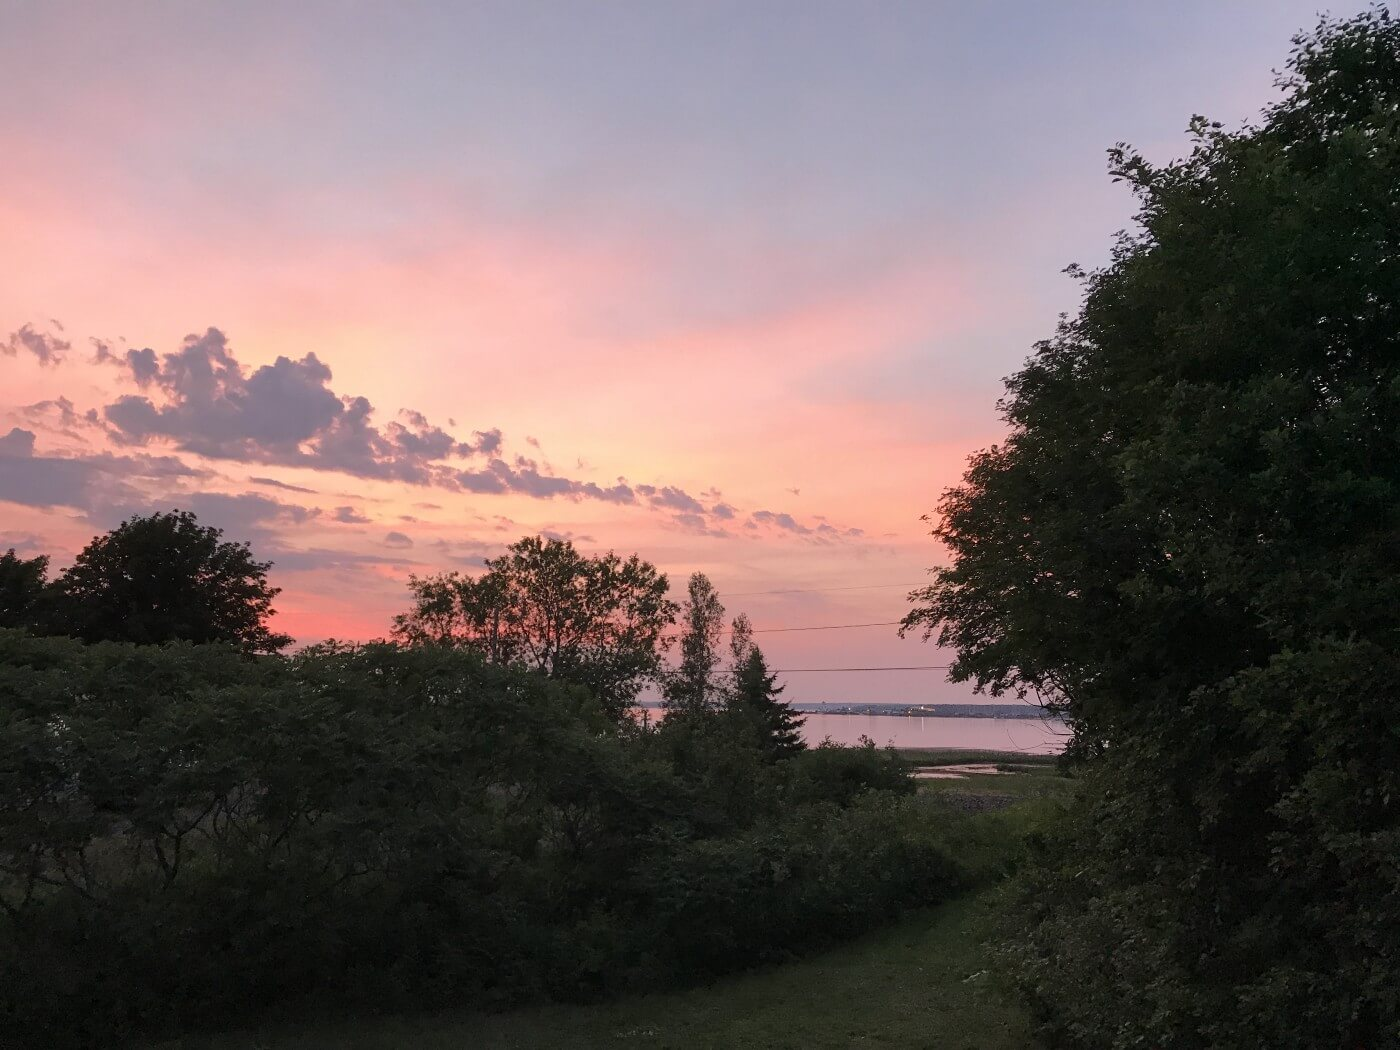 View of the Northumberland Strait at summer sunset from my deck in Point du Chene, New Brunswick, Canada